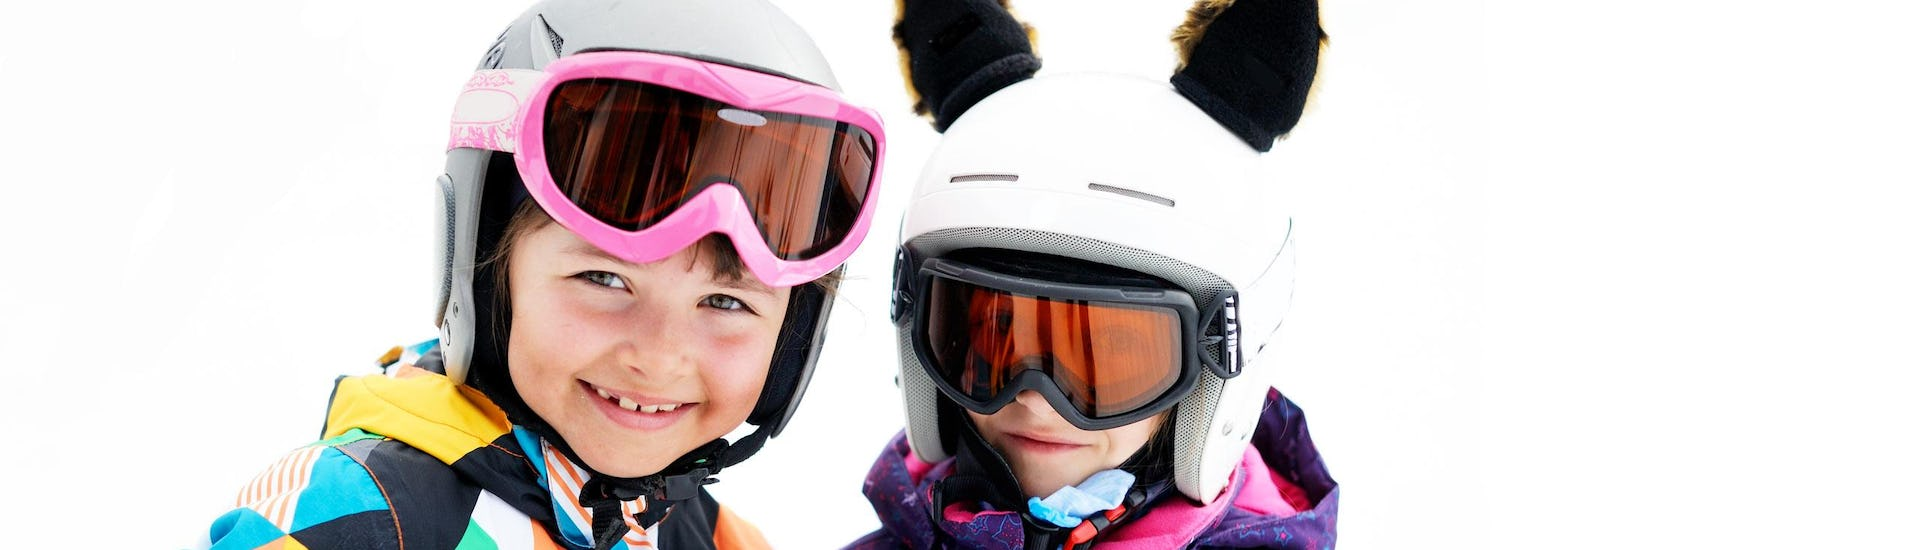 Two young children smiling at the camera during one of the Ski Instructor Private for Families - Afternoon Class organised by Family Skiing.